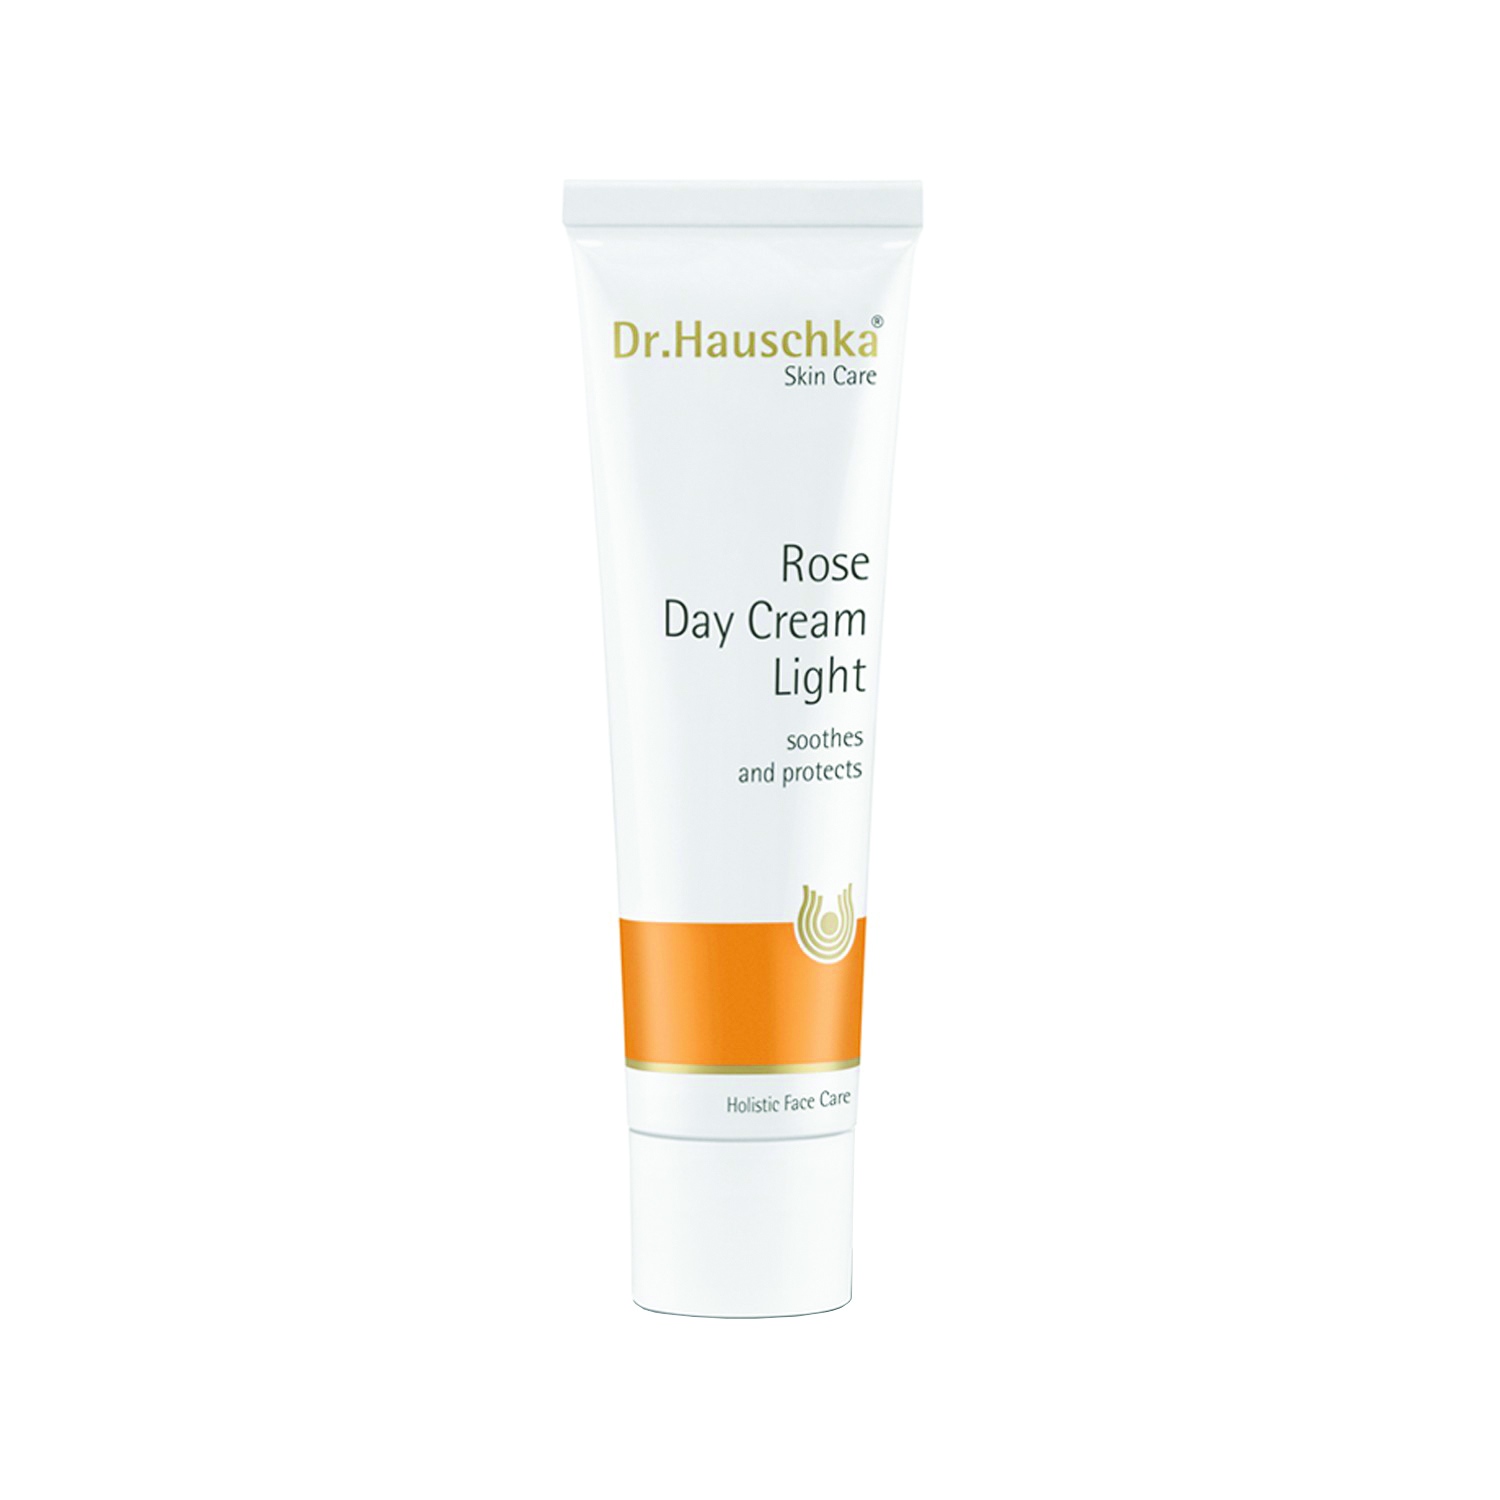 8455_Dr.-Hauschka_Rose-Day-Cream-Light_RAW_3-5-14